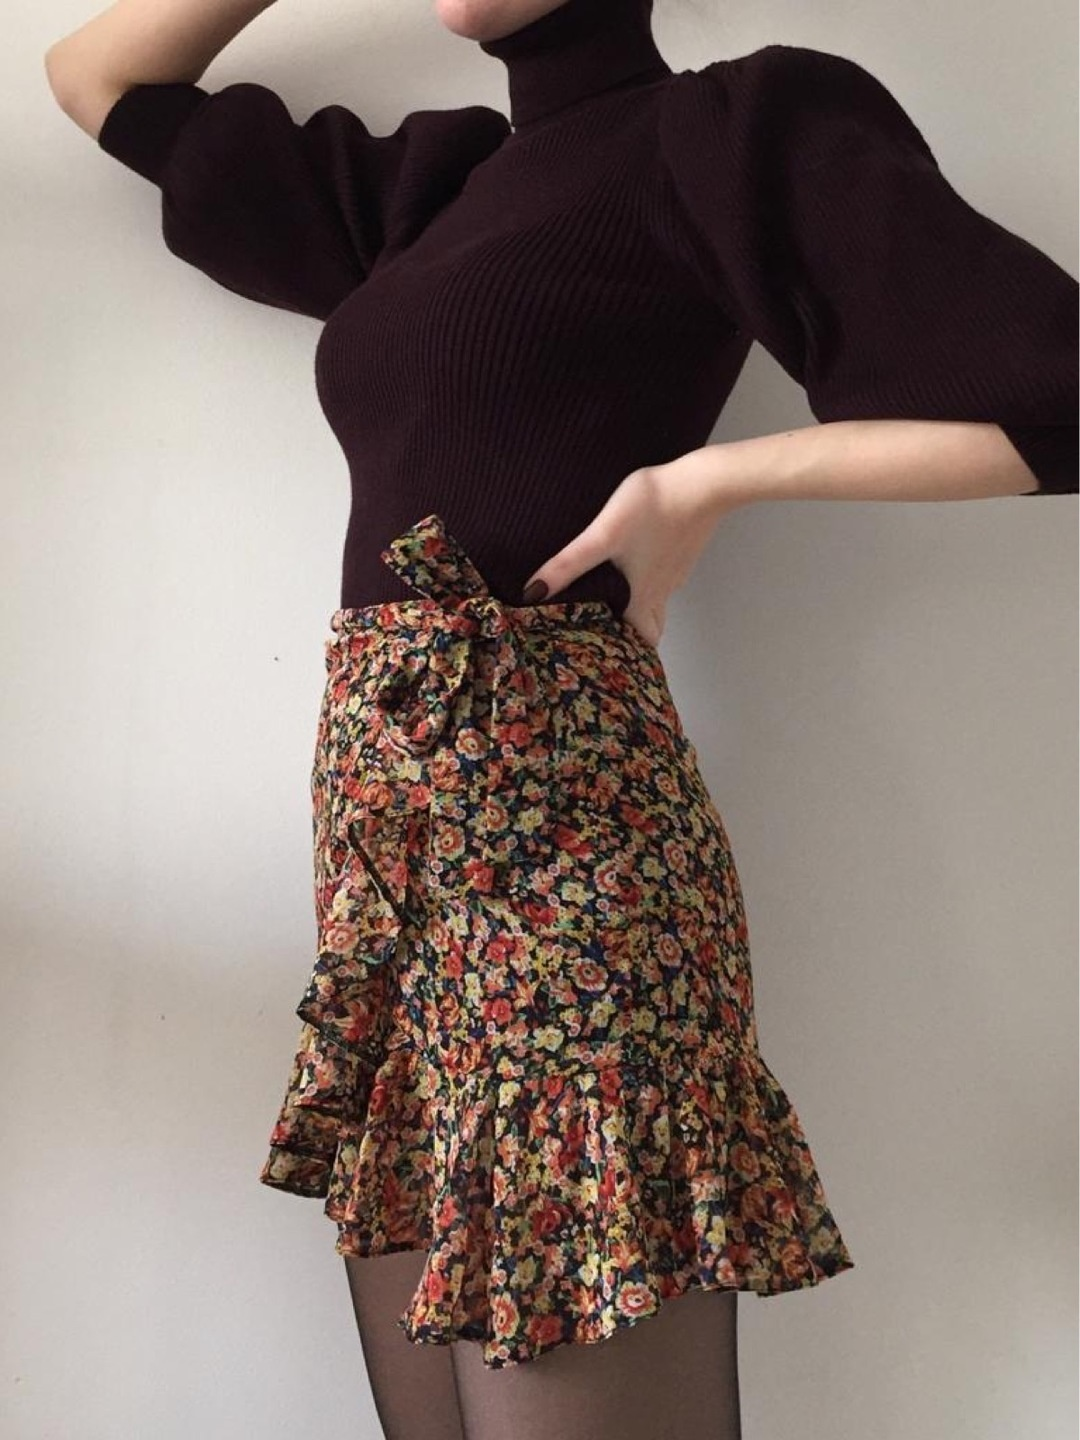 Women's skirts - URBAN OUTFITTERS photo 1